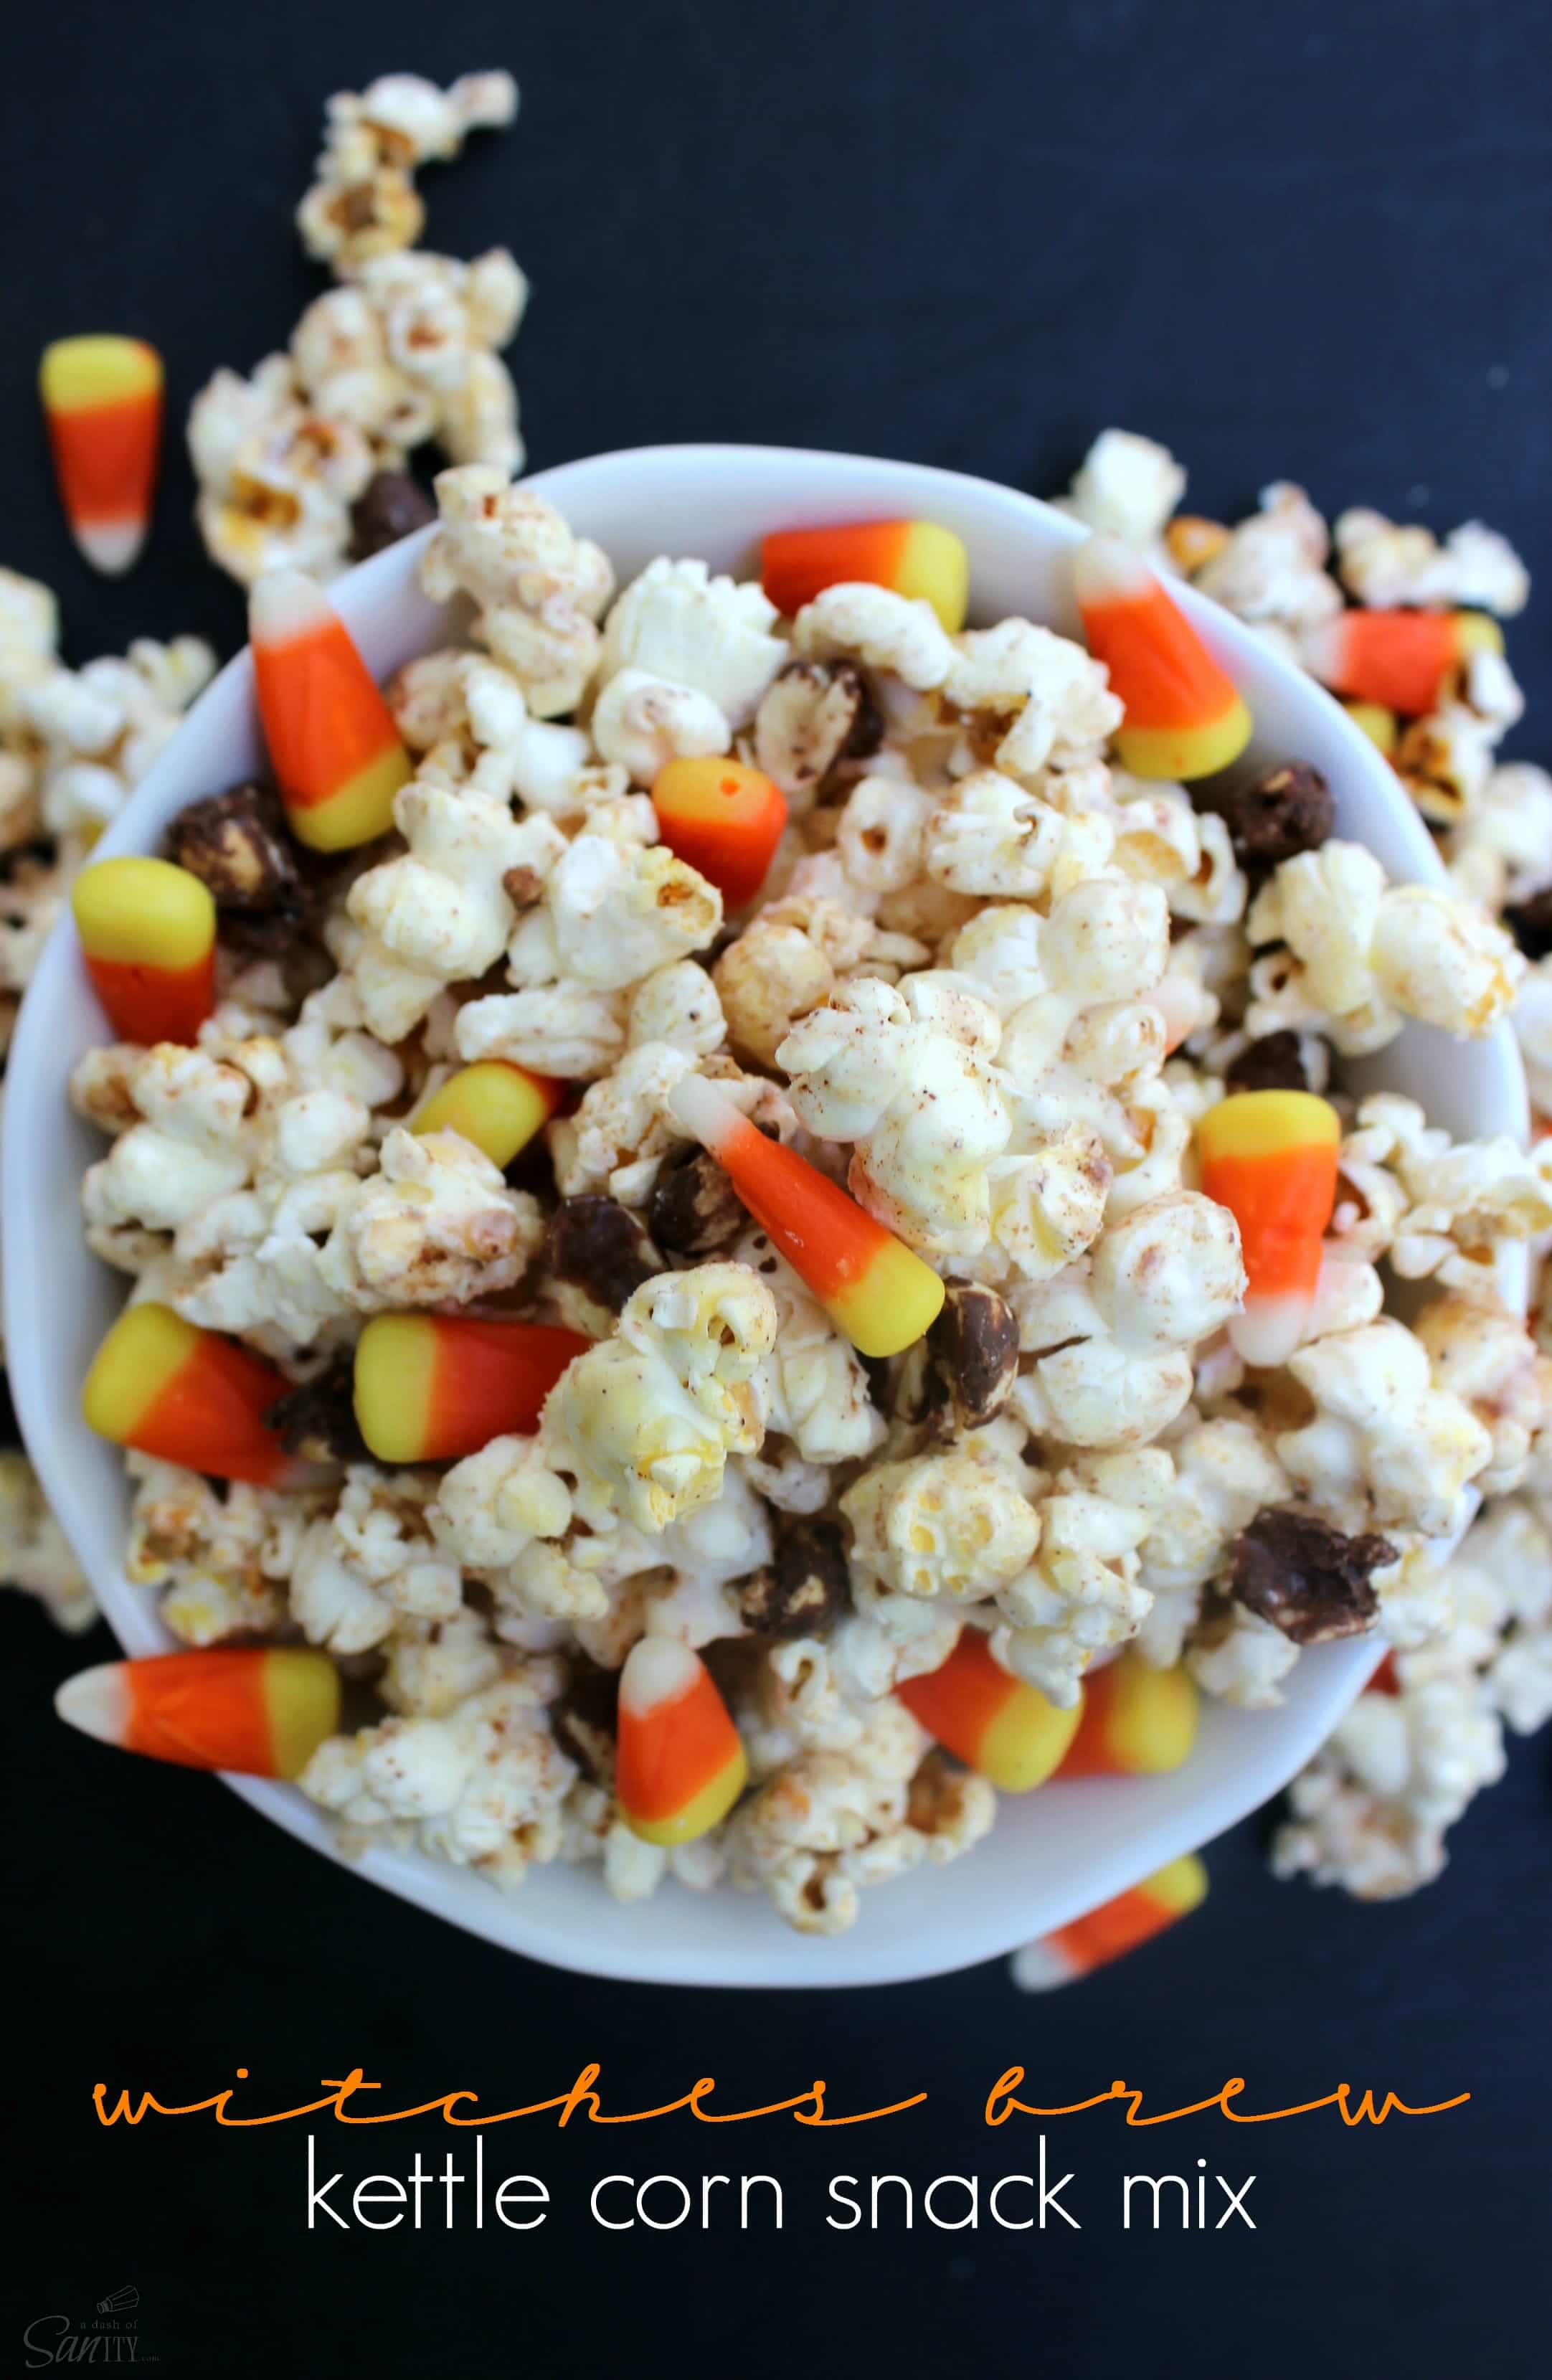 Withes Brew Kettle Corn Snack Mix